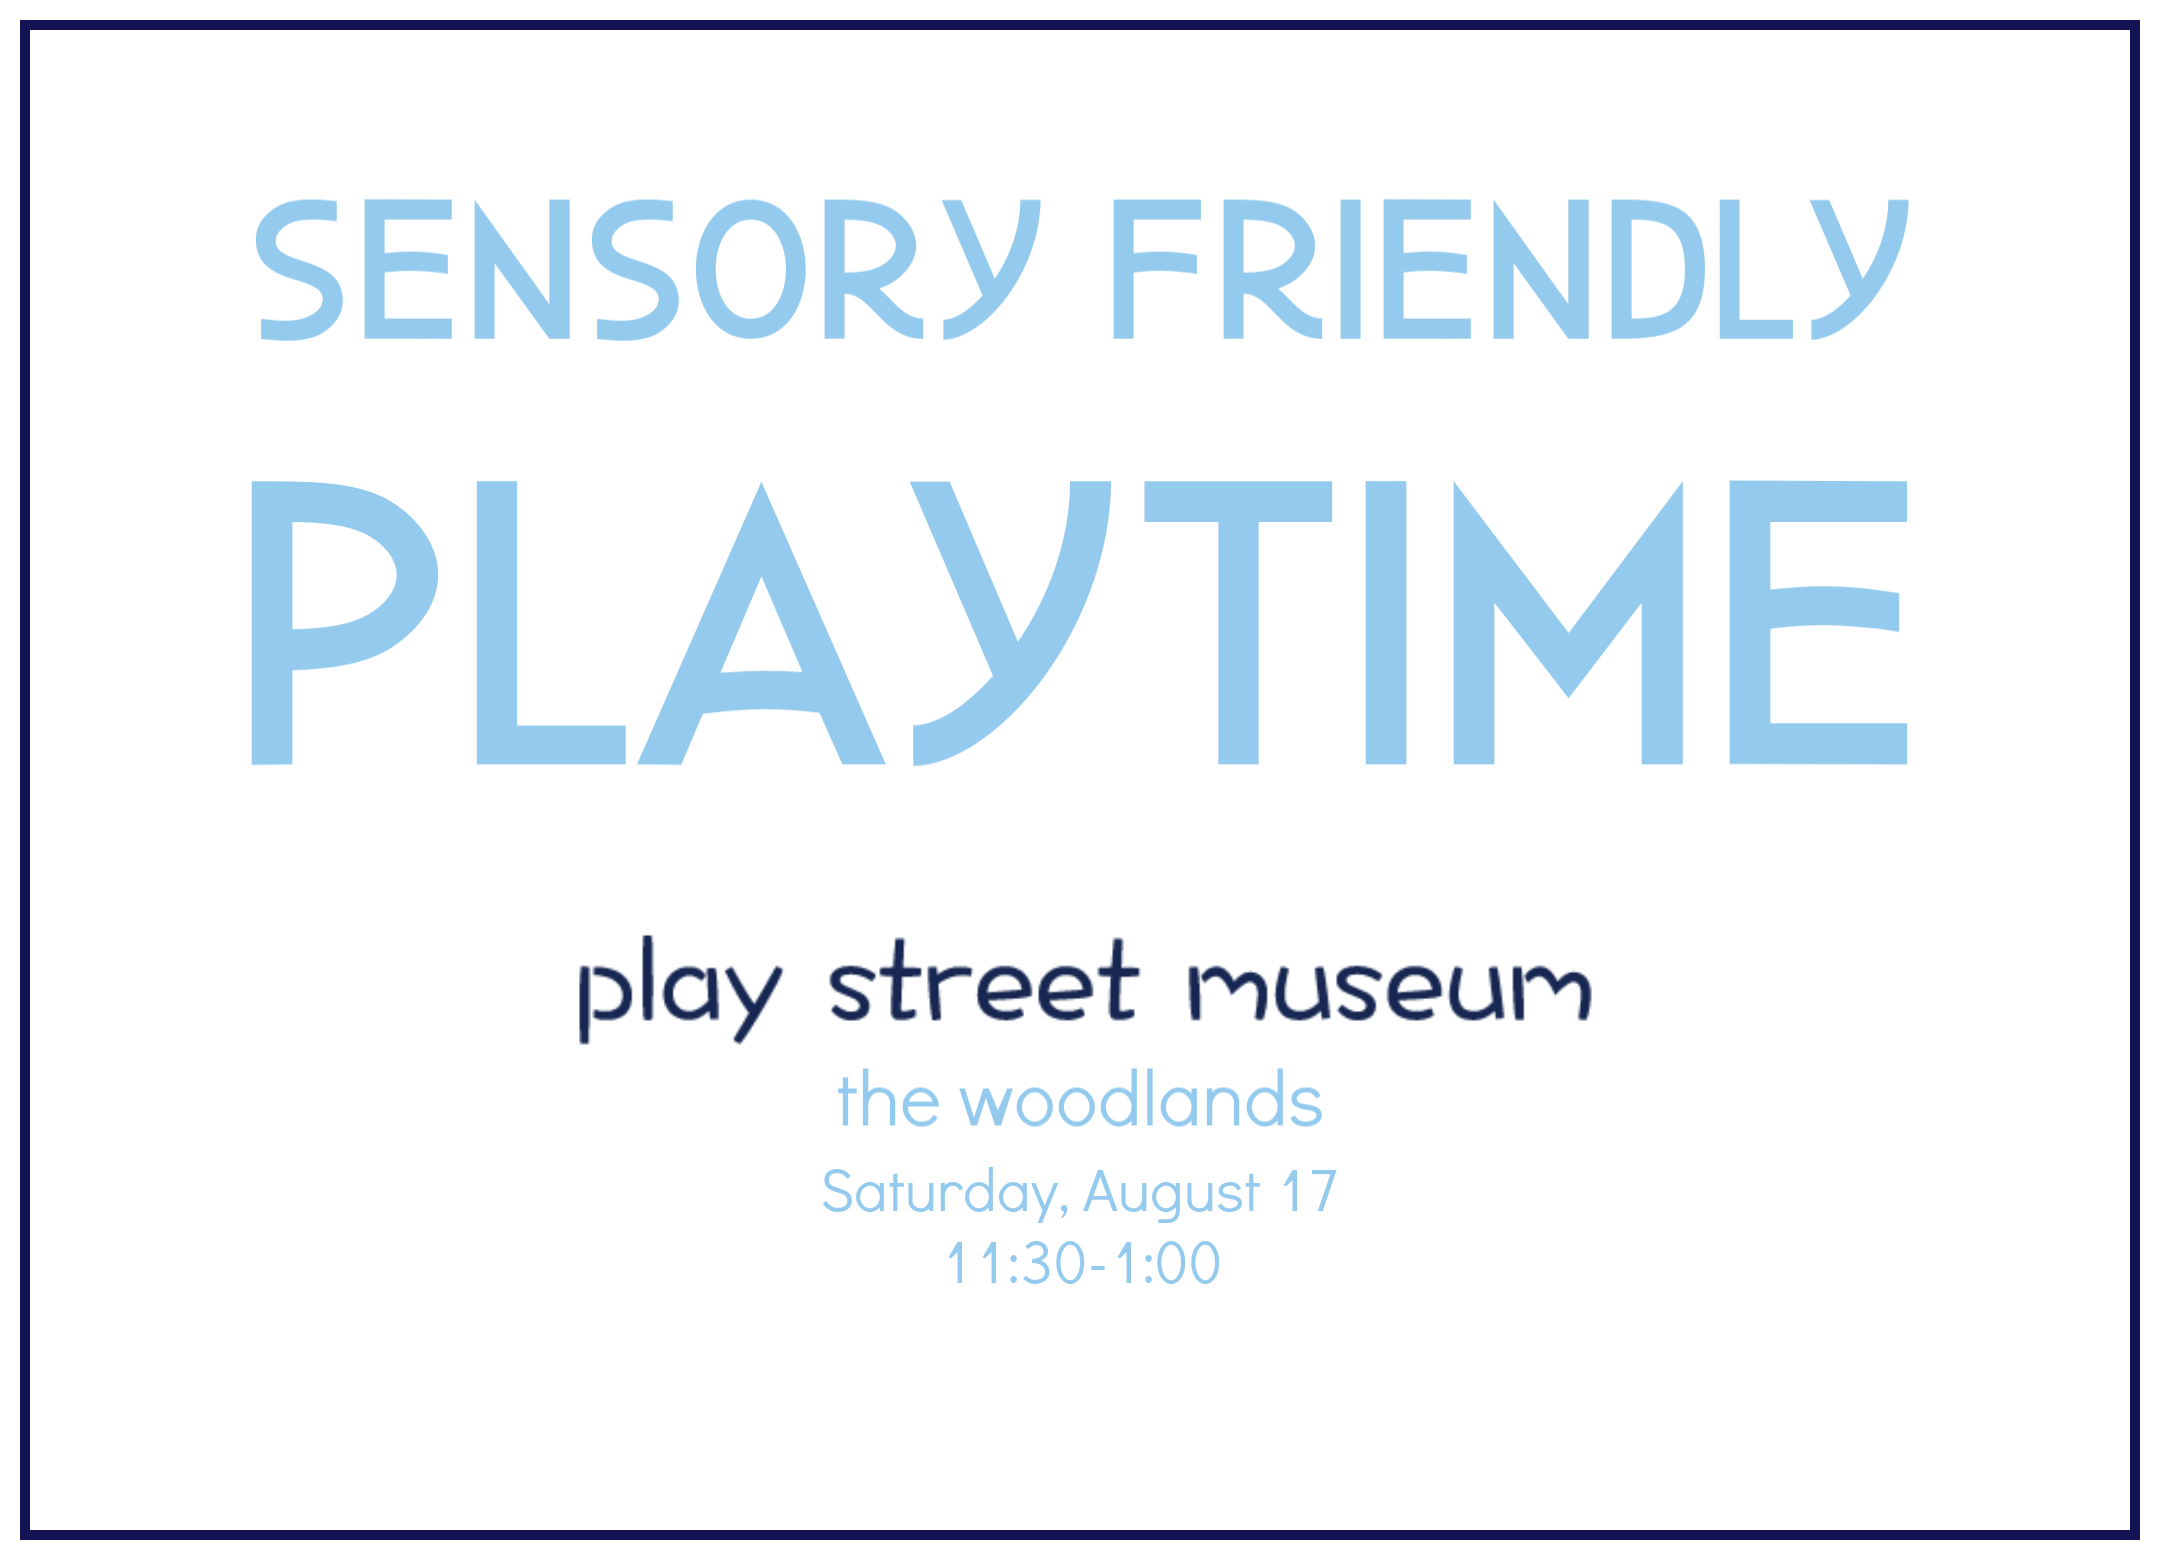 Sensory Friendly Playtime TW-2.png